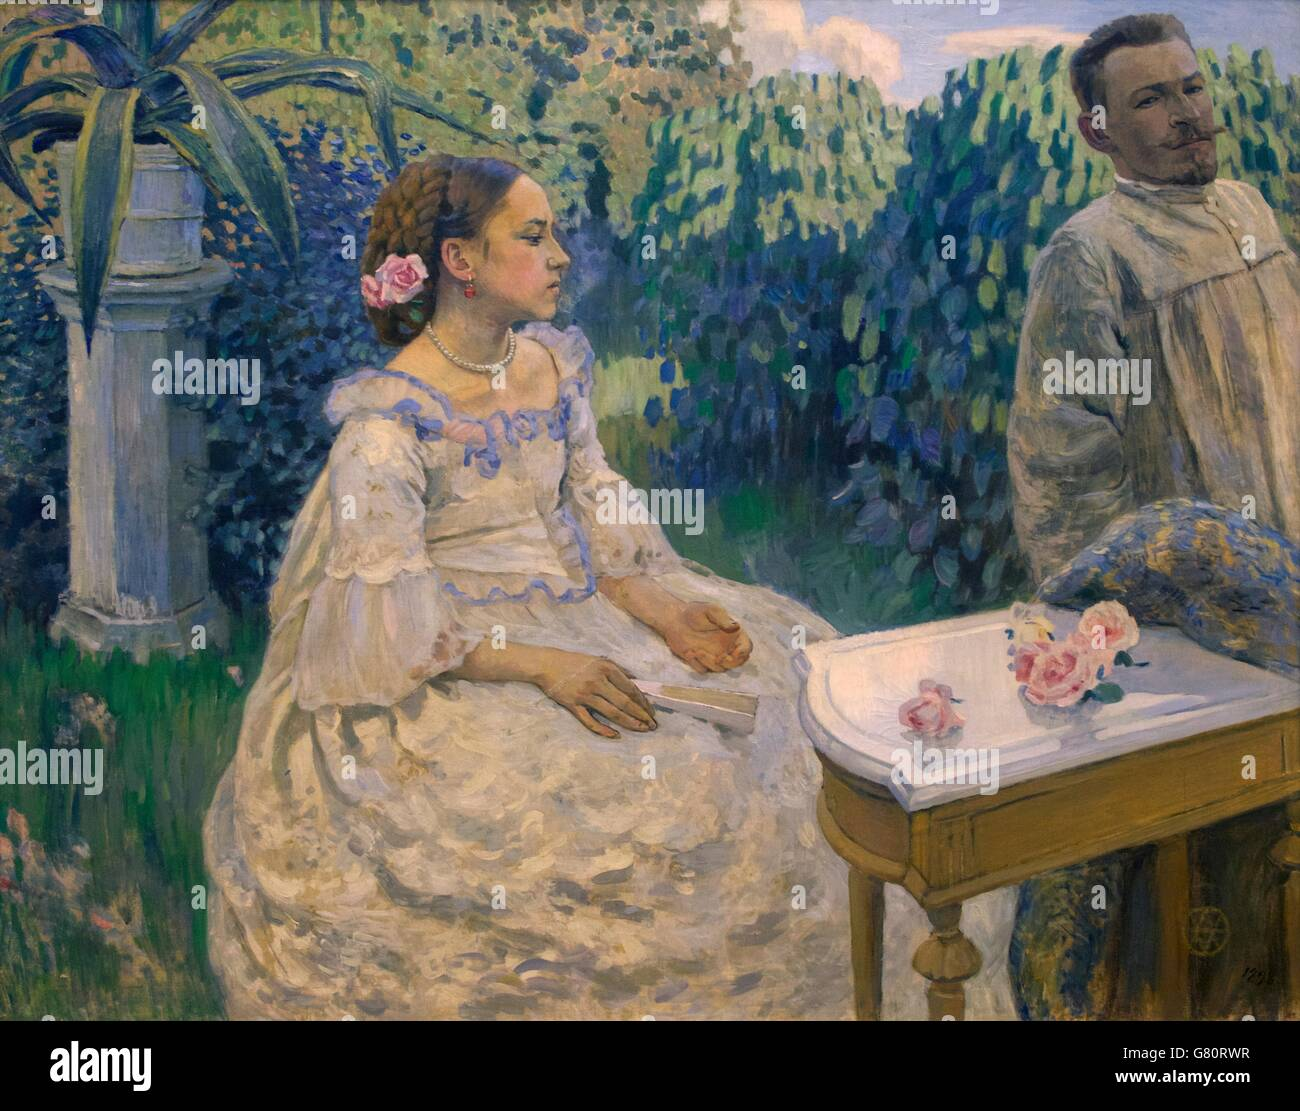 Self-Portrait with Sister, by Victor Borisov-Mussatov, 1898, State Russian Museum, Saint Petersburg, Russia - Stock Image